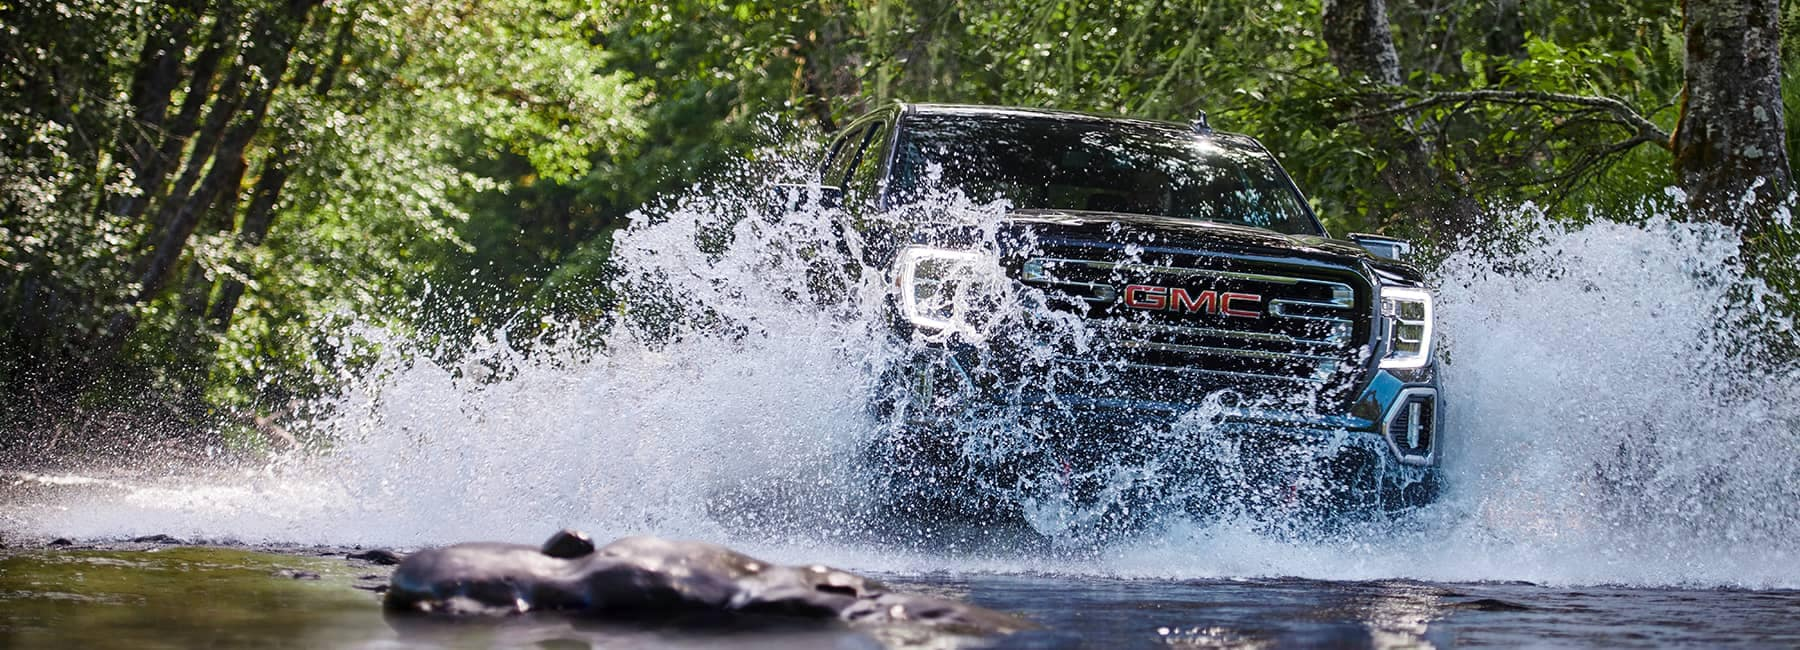 2020 GMC Sierra 1500 Crossing a River